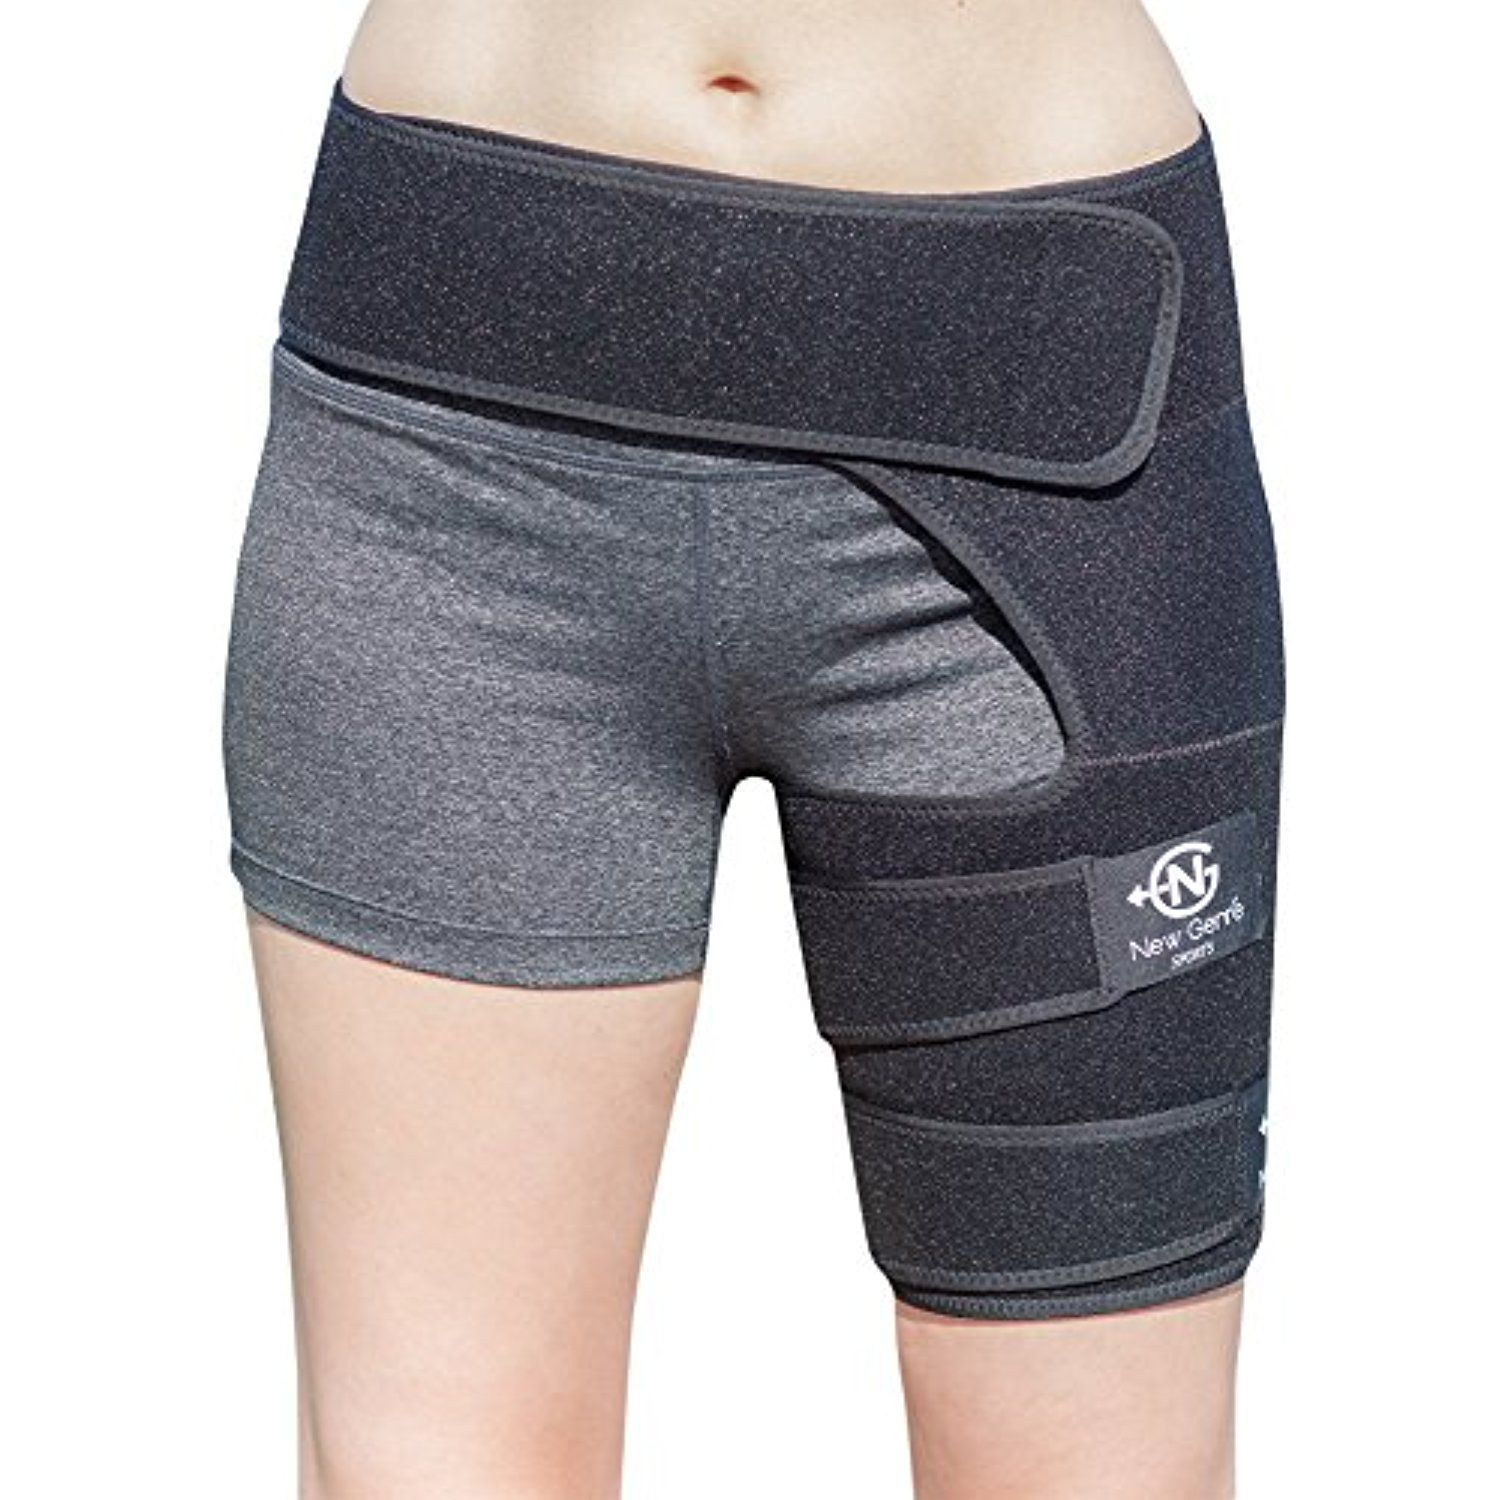 aeac6e8f17 Groin Support Brace by NewGen Sports, Breathable Adjustable Sleeve for  Women and Men Compression Wrap Band for Leg, Thigh, Quad, Hamstring, Hip  Joints, ...